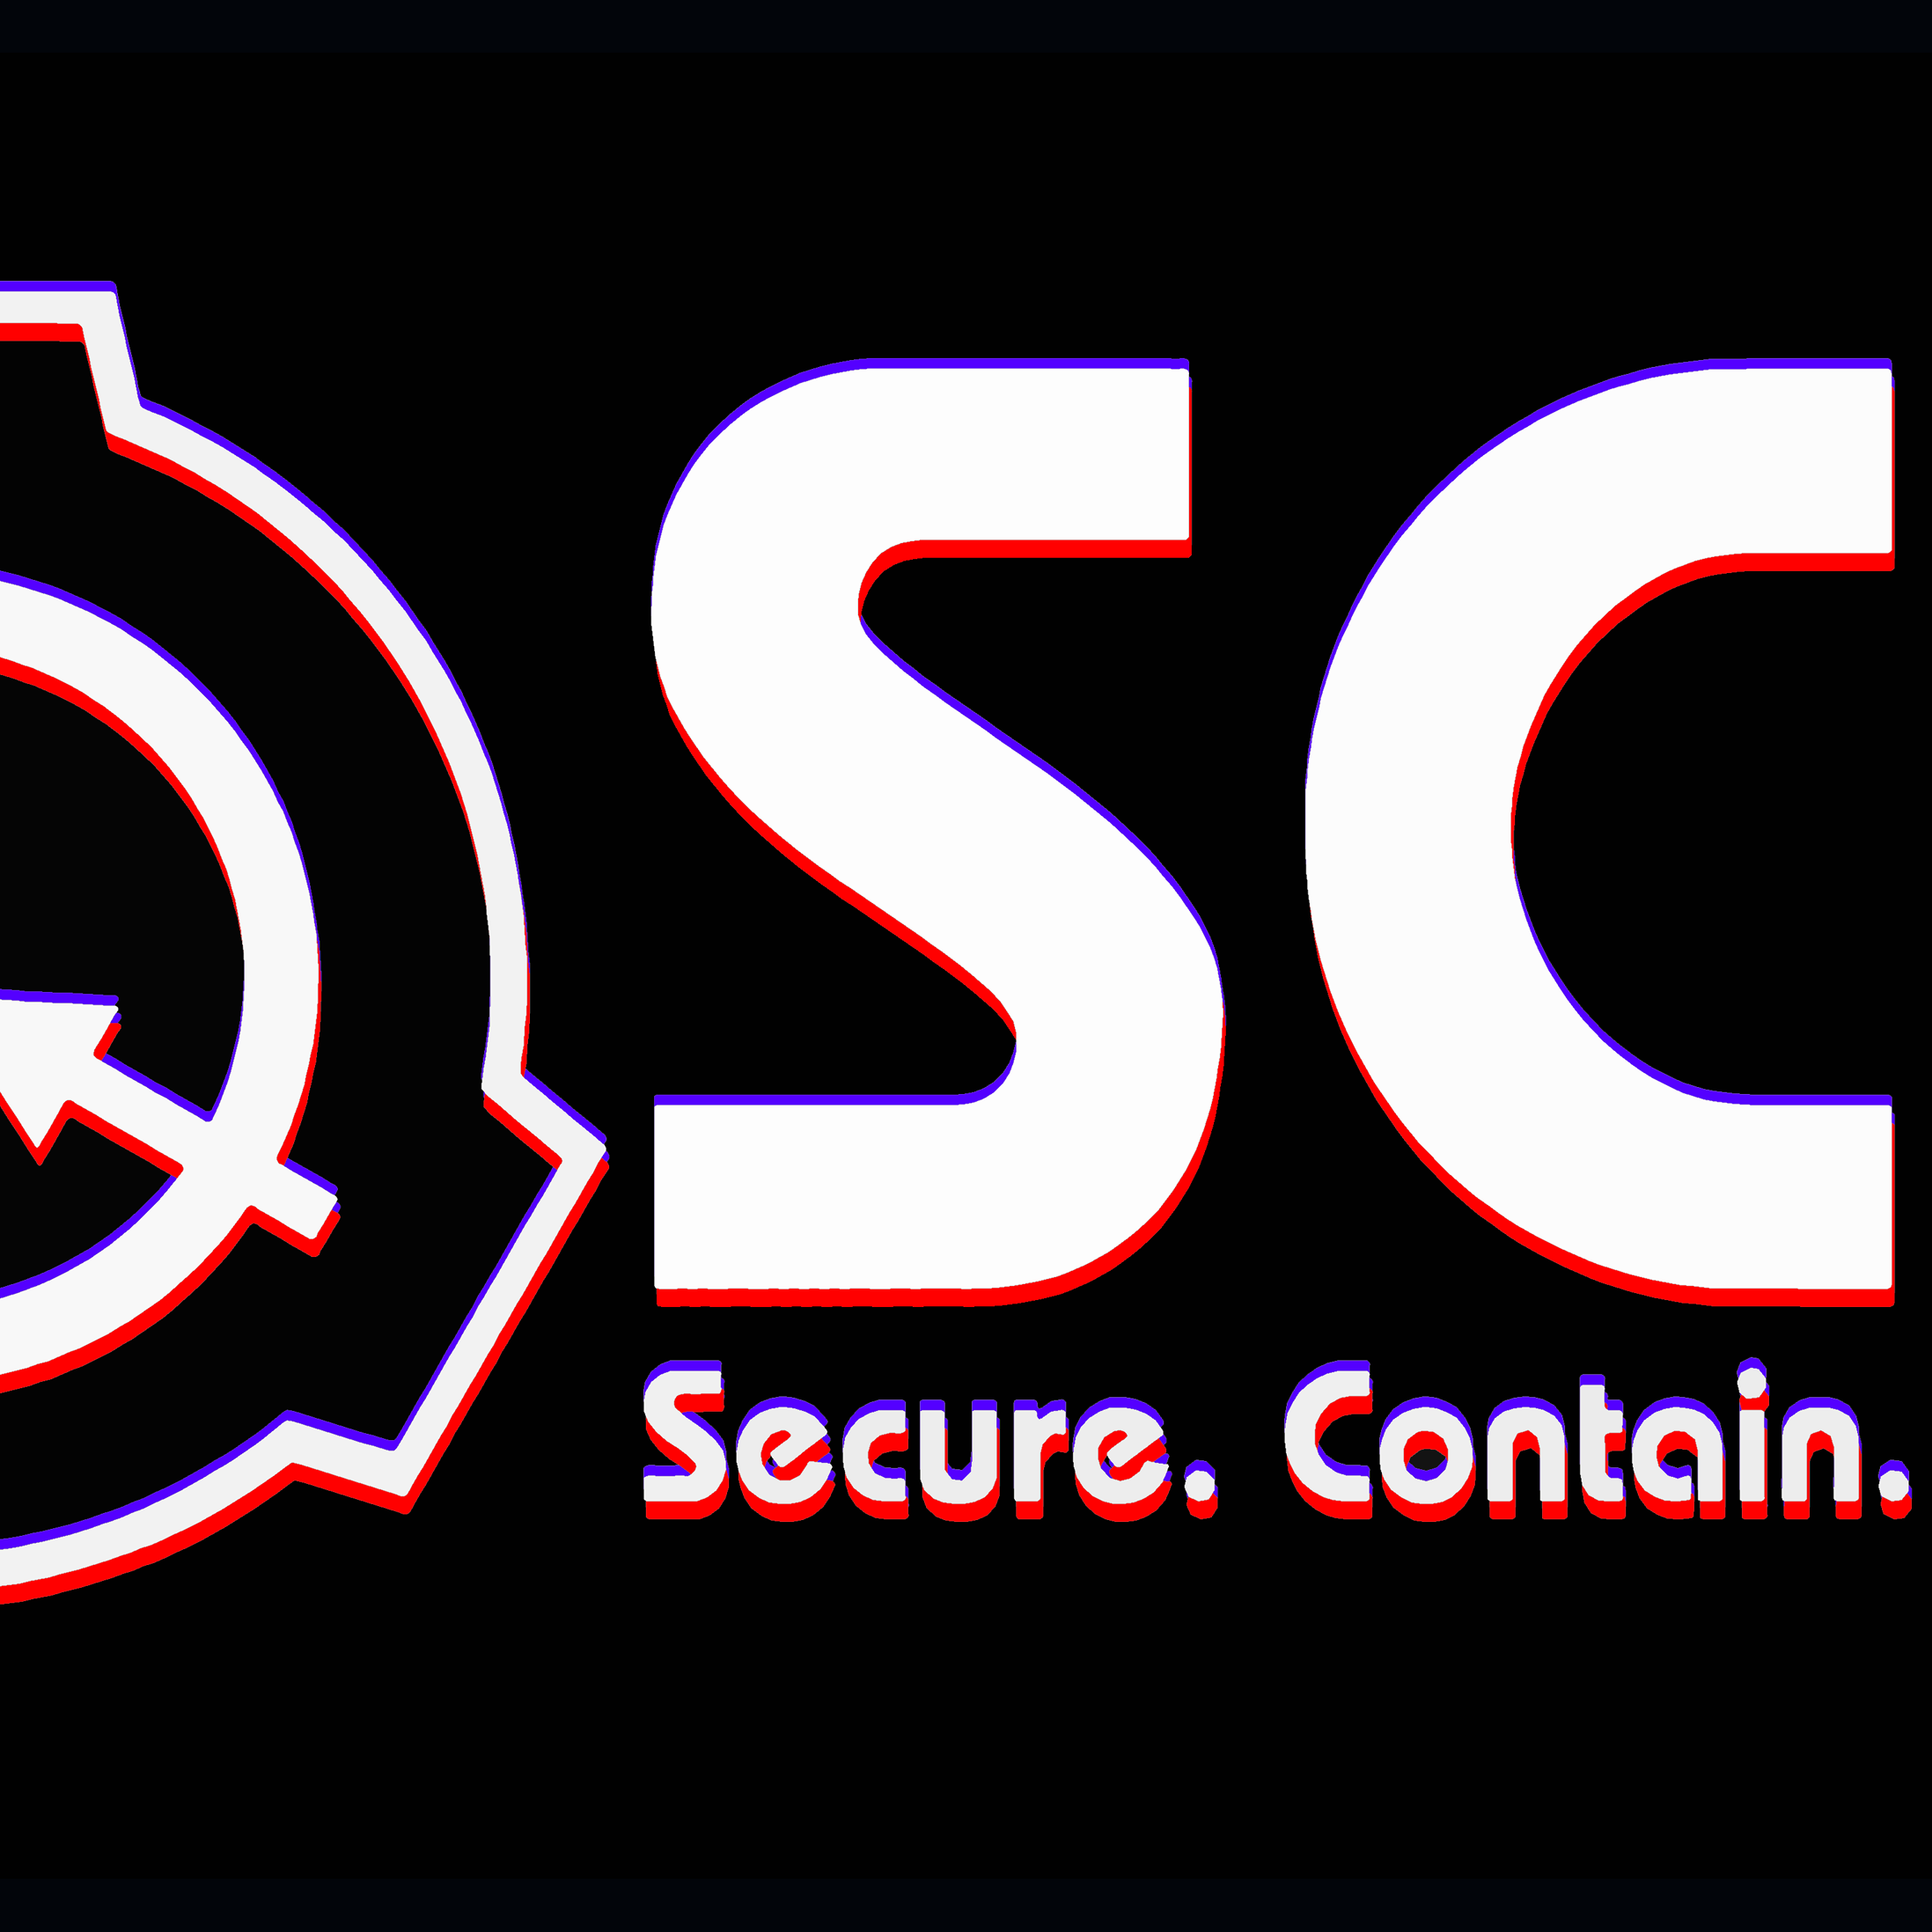 Scp 3d Logo Ladies T By Discordia Merchandising Populous Ephemera Online Store Powered By Storenvy It has been about 10,000 years. scp 3d logo ladies t by discordia merchandising from populous ephemera